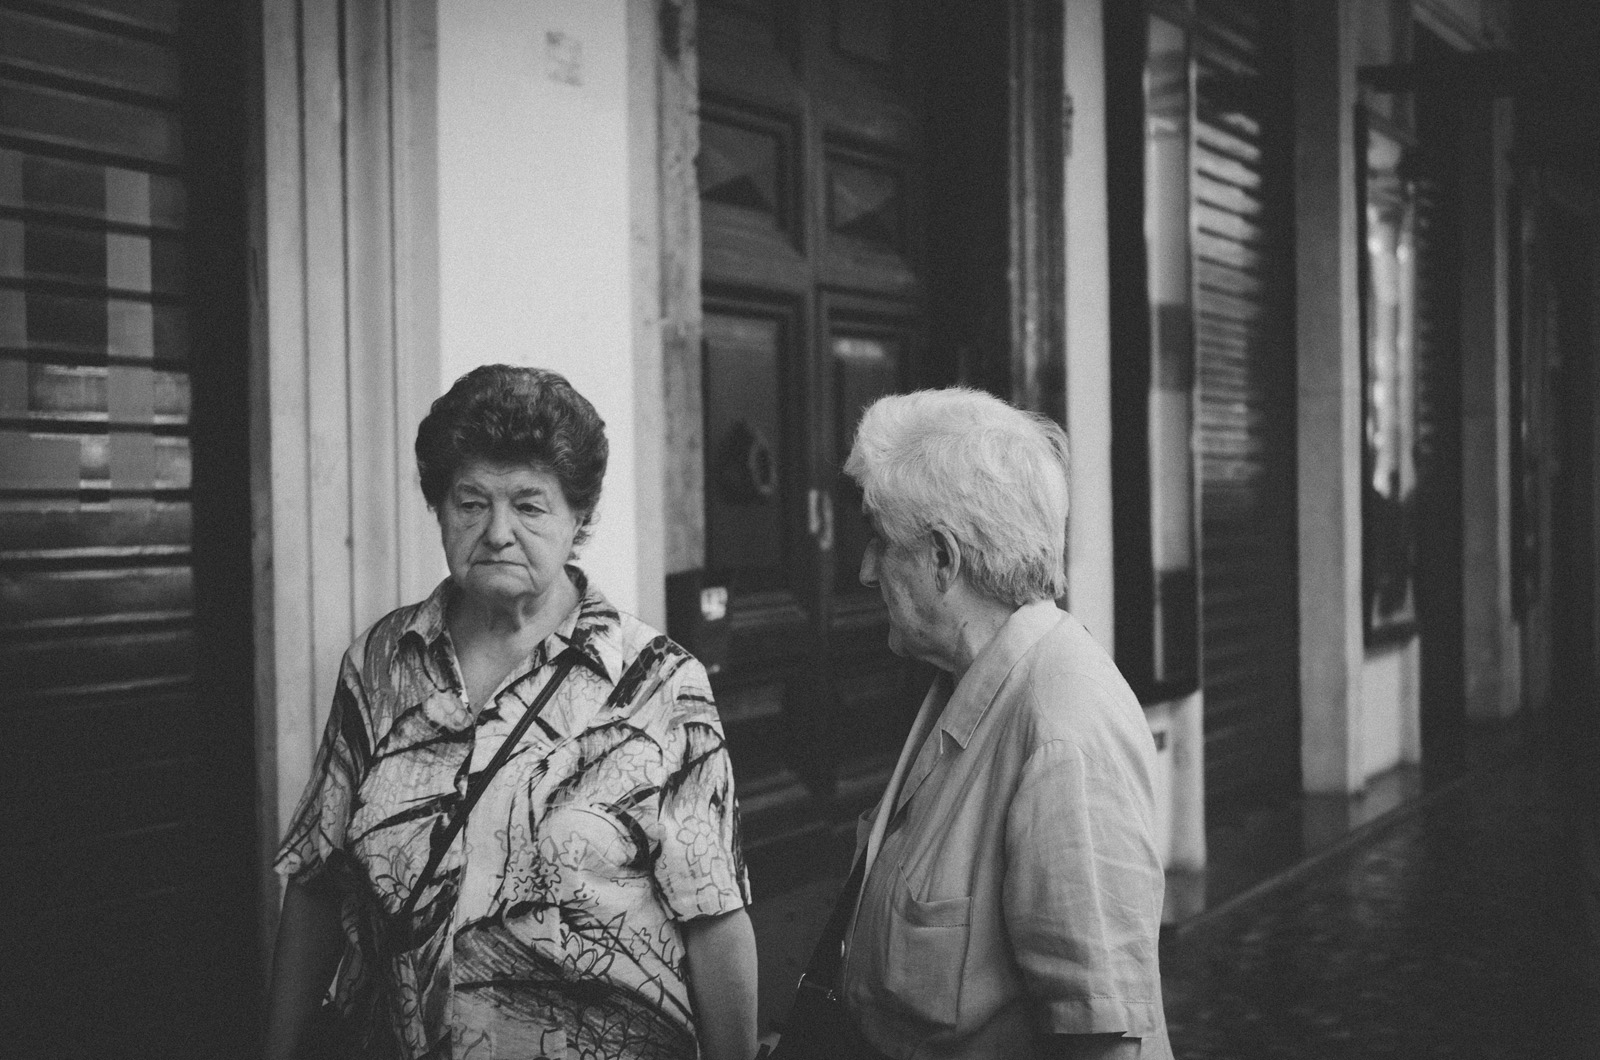 Two locals going about their business in Rome. Once you get away from Rome's bustling tourist center near the famous ruins, the city provides a much more intimate perspective on every day Italian life.